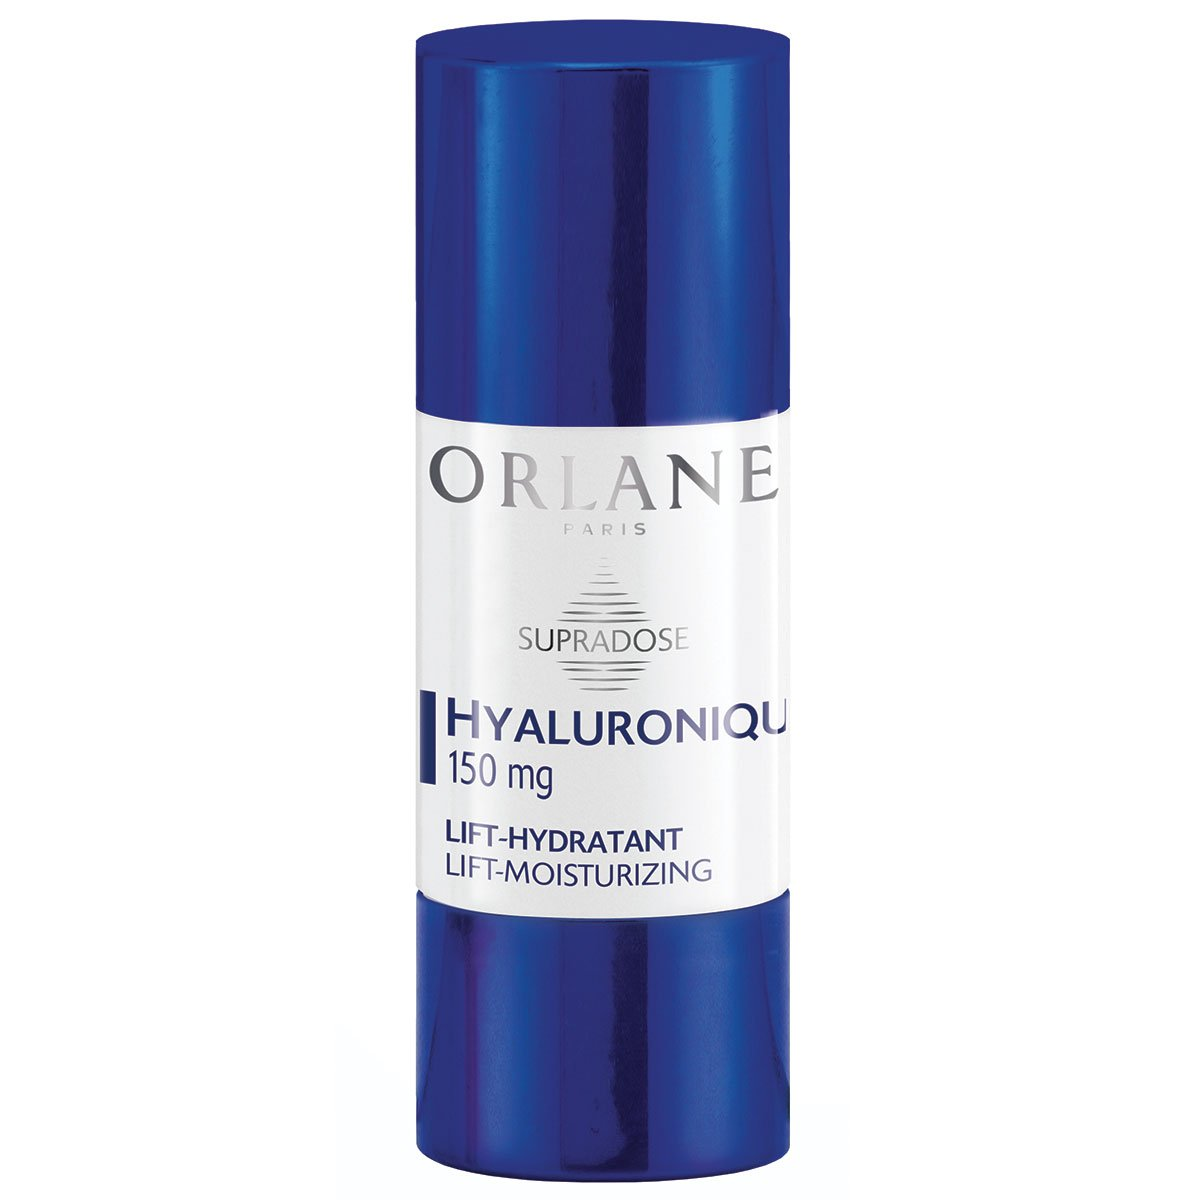 Orlane - Supradose - Concentré Acide Hyaluronique Lift Hydratant 15 ml